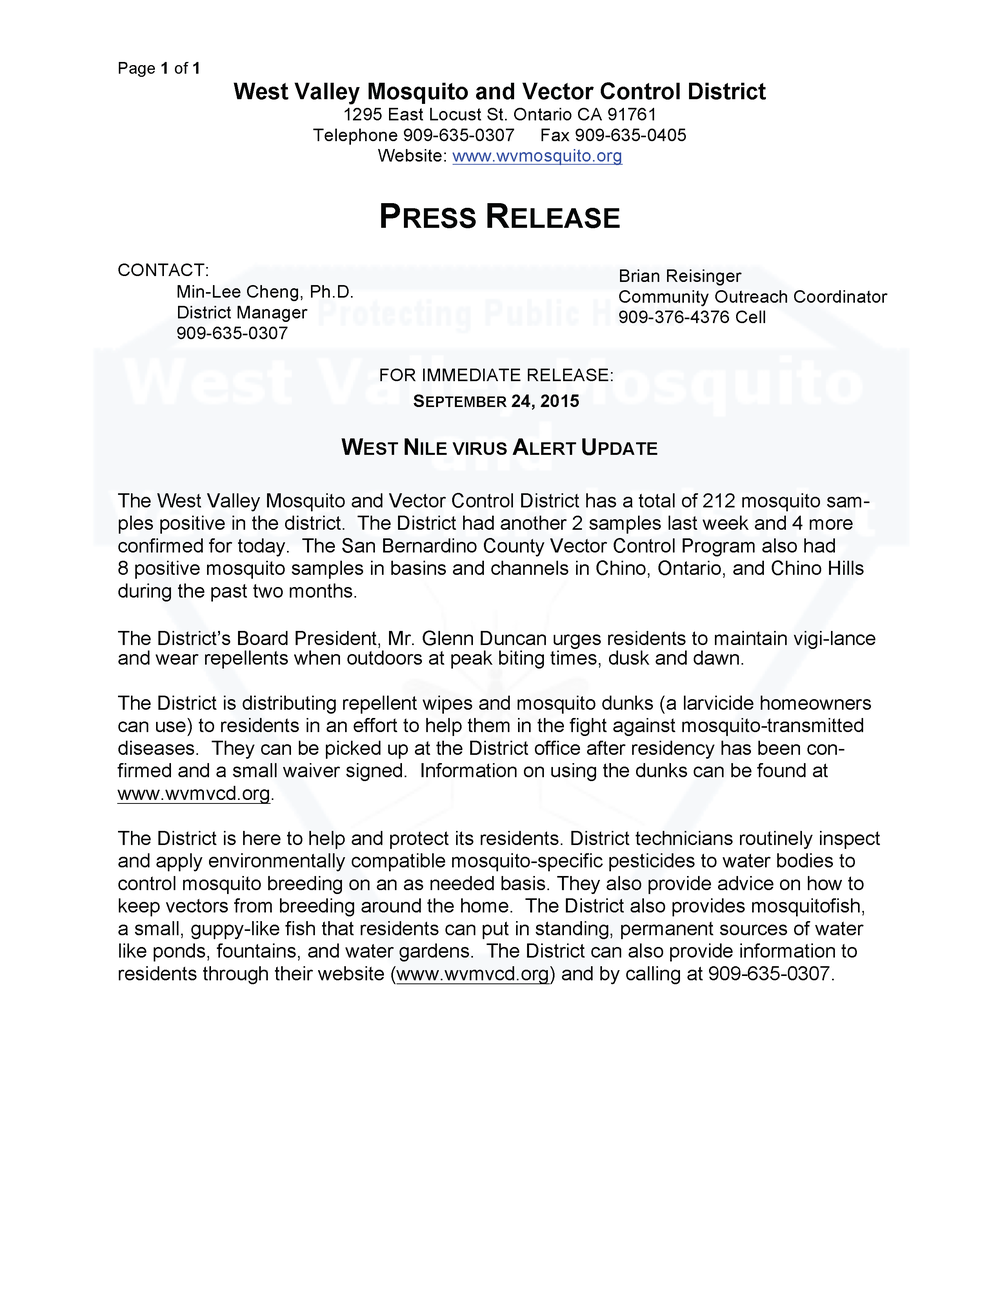 Latest Press Releases a press release about the west nile virus. Click on the image to view press releases.